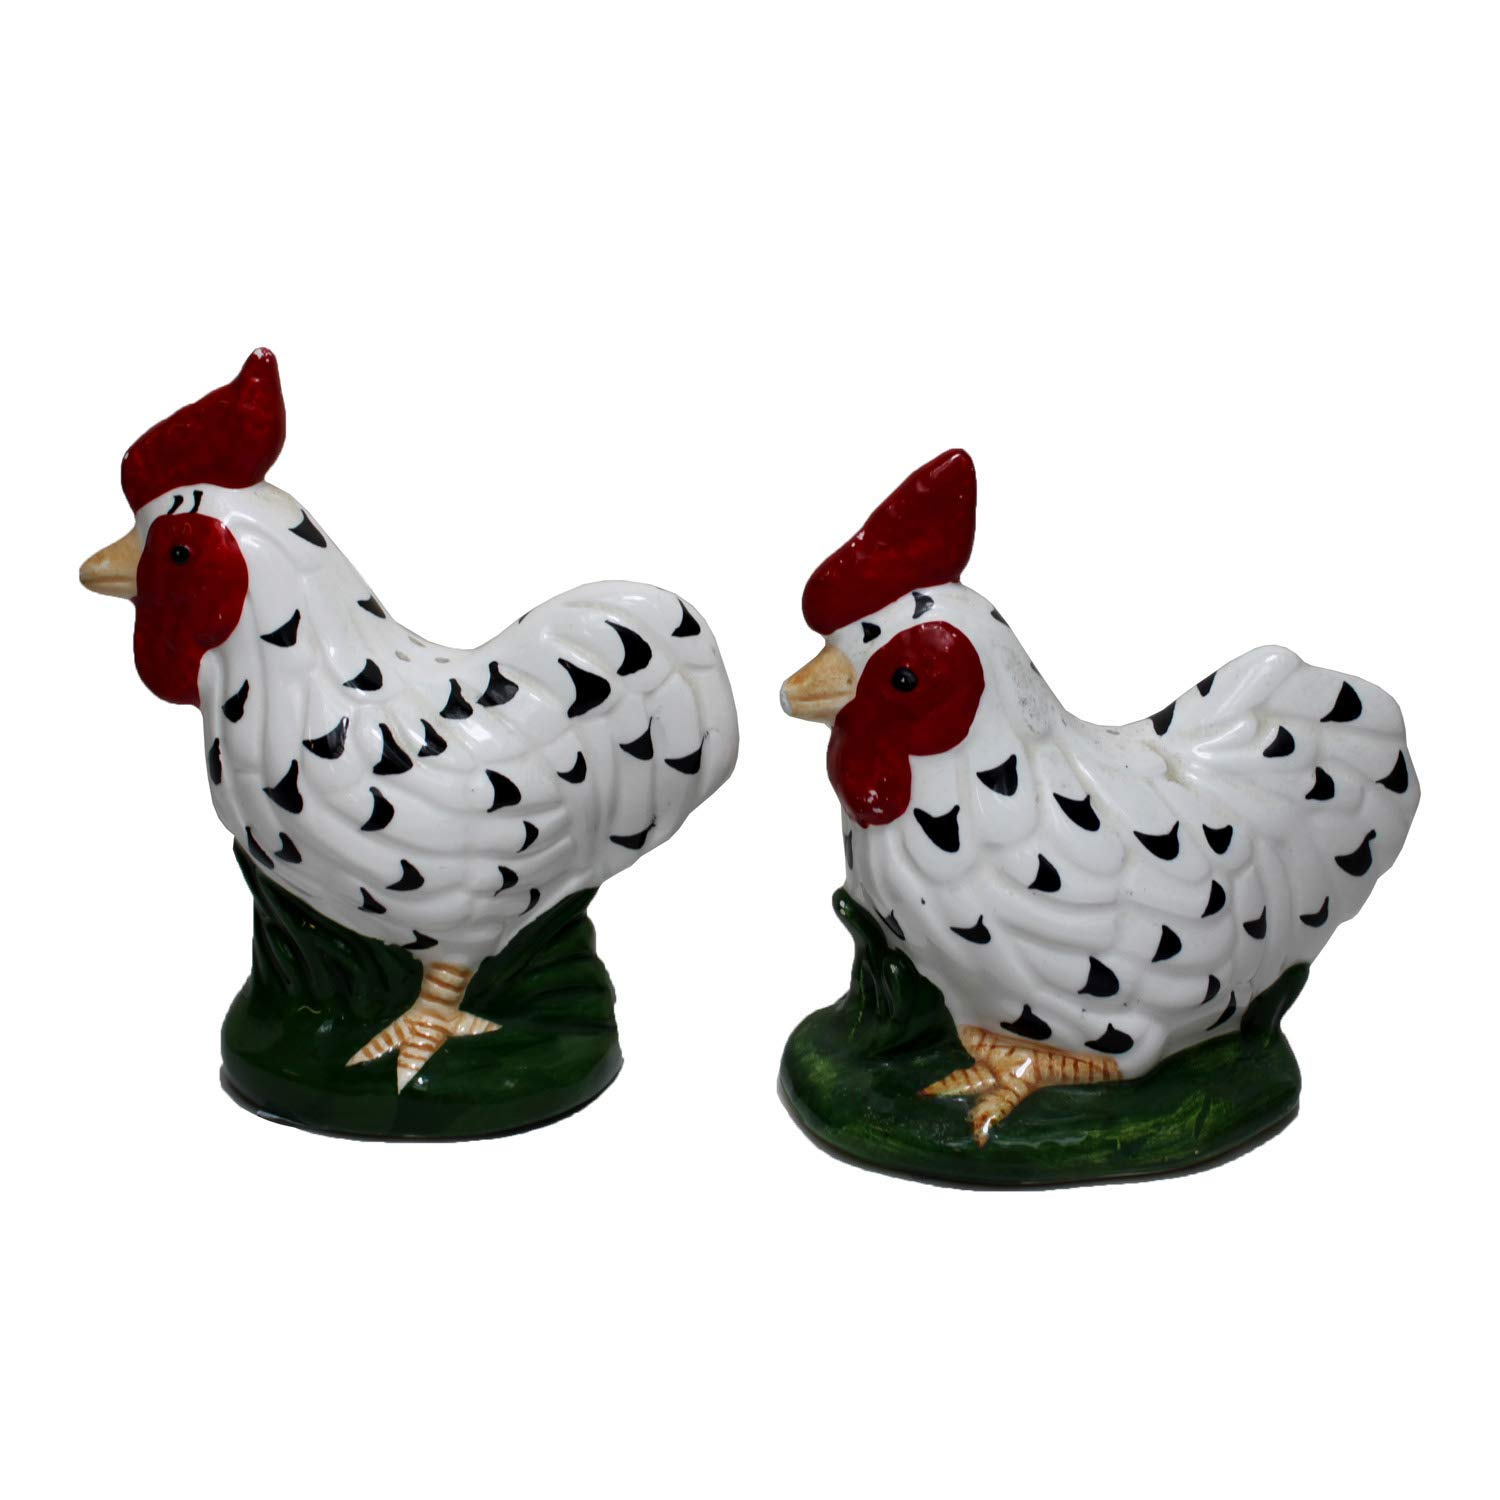 Rooster Kitchen Decor Salt and Pepper Shakers Set in Vintage Look Chicken Wire B